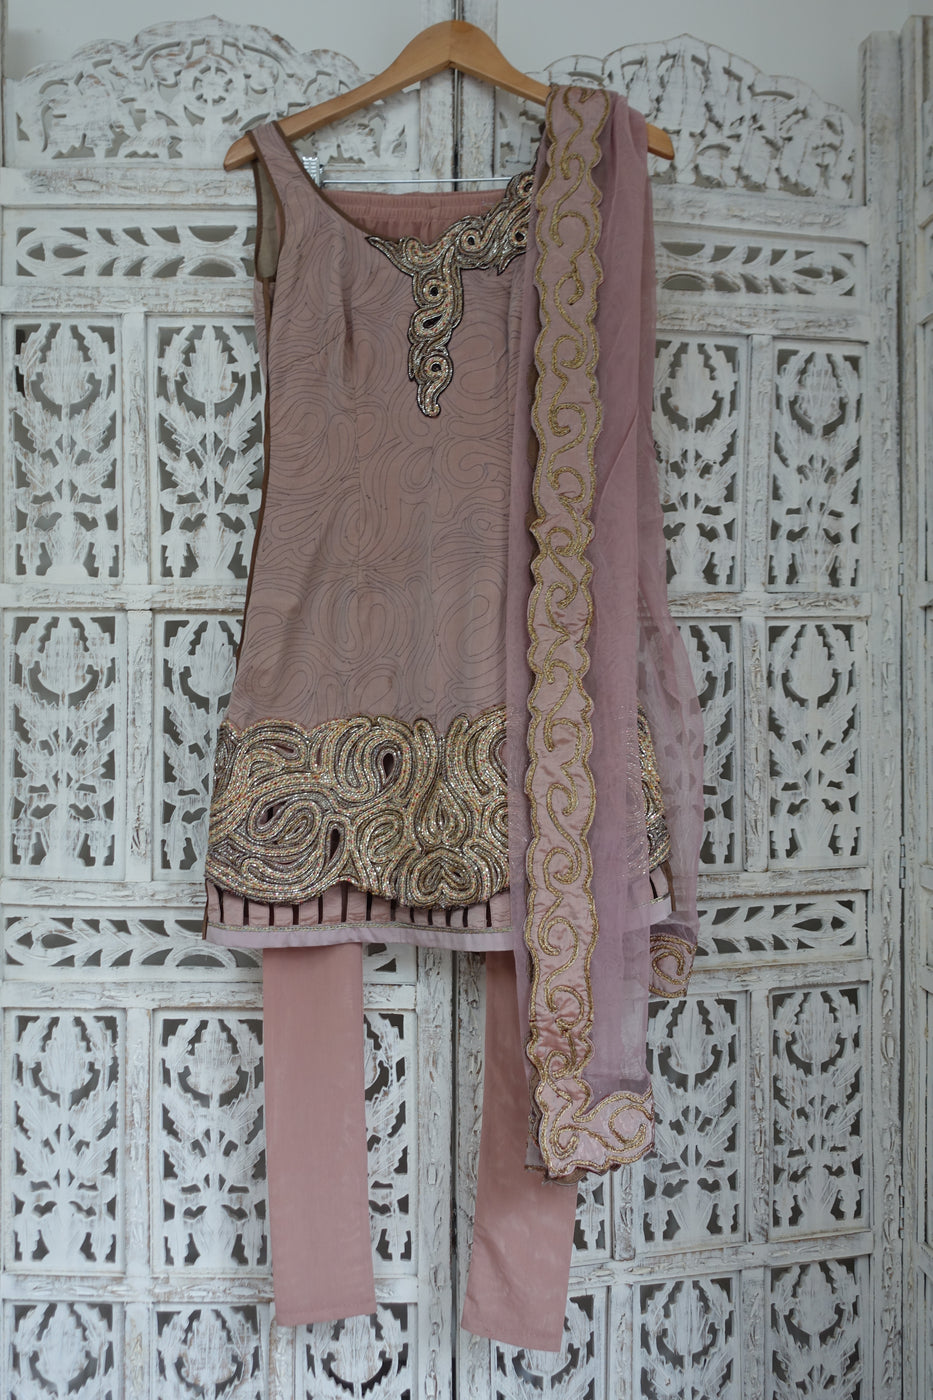 Blush Designer Churidaar Suit - UK 4 / EU 30 - Preloved - Indian Suit Company